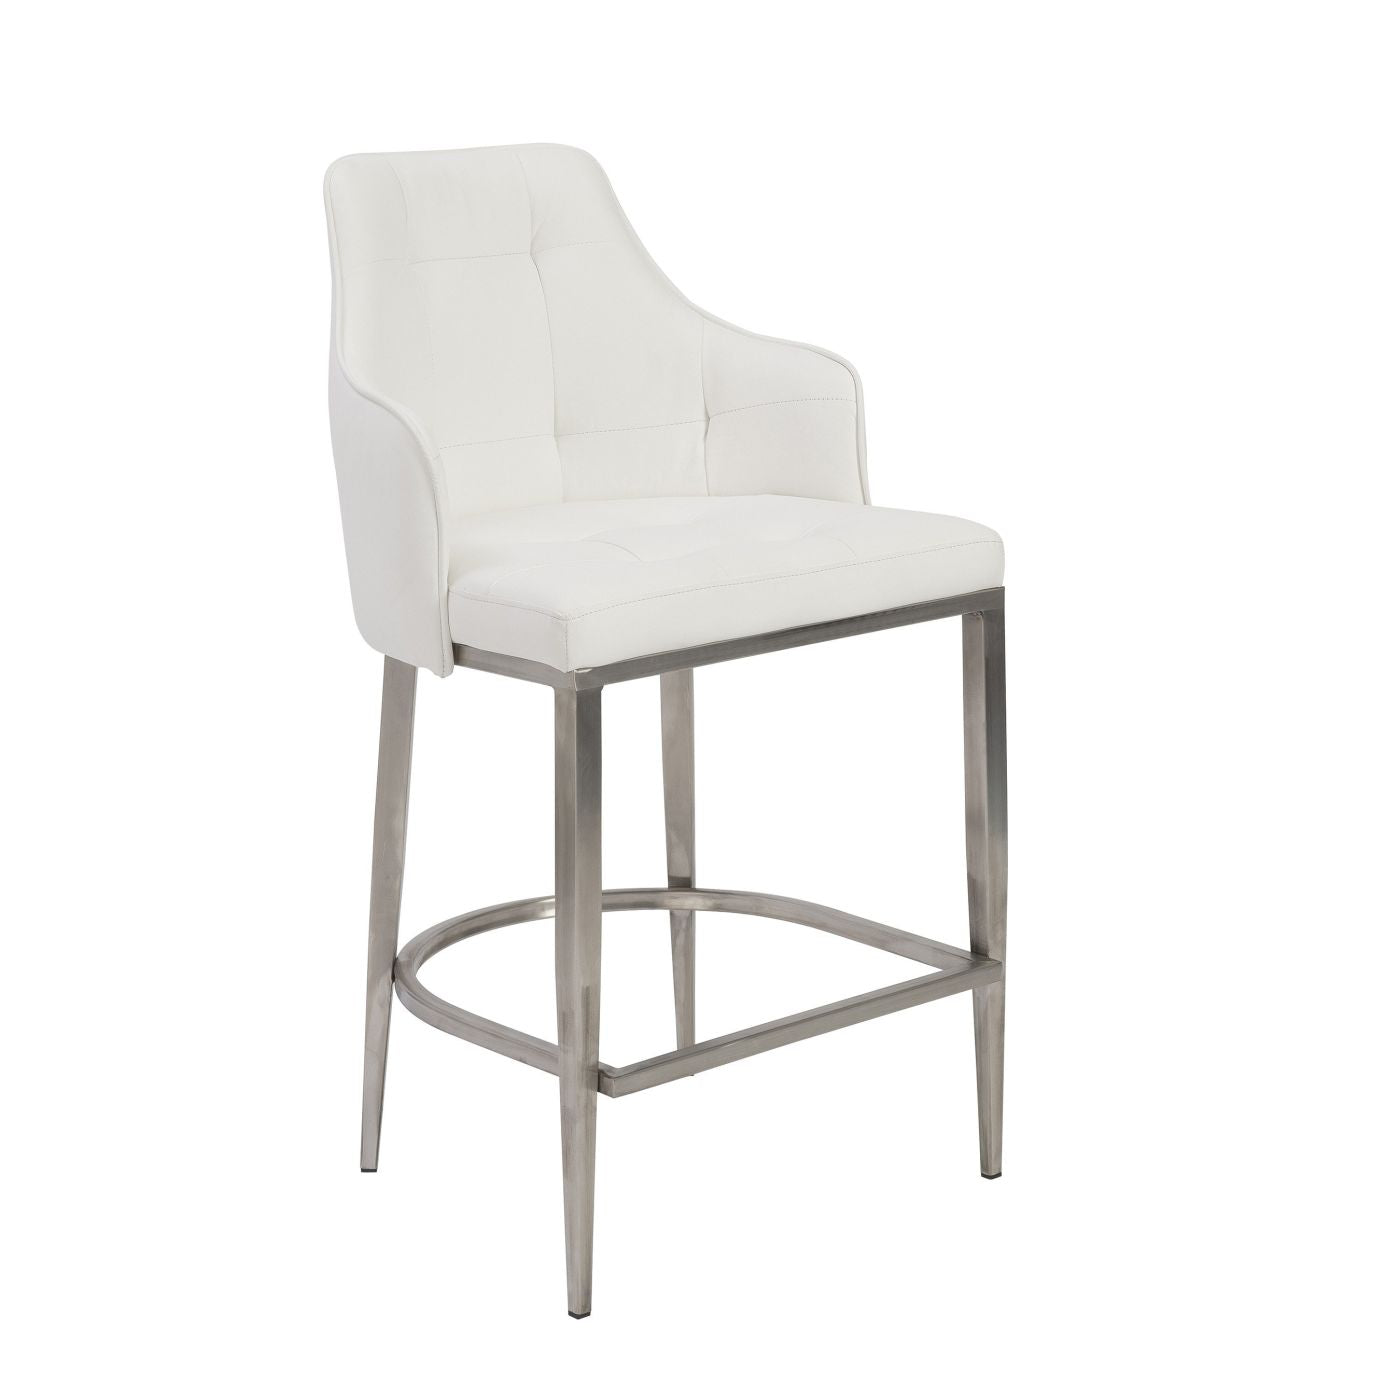 Strange Aaron Bar Stool In White With Brushed Stainless Steel Legs Creativecarmelina Interior Chair Design Creativecarmelinacom